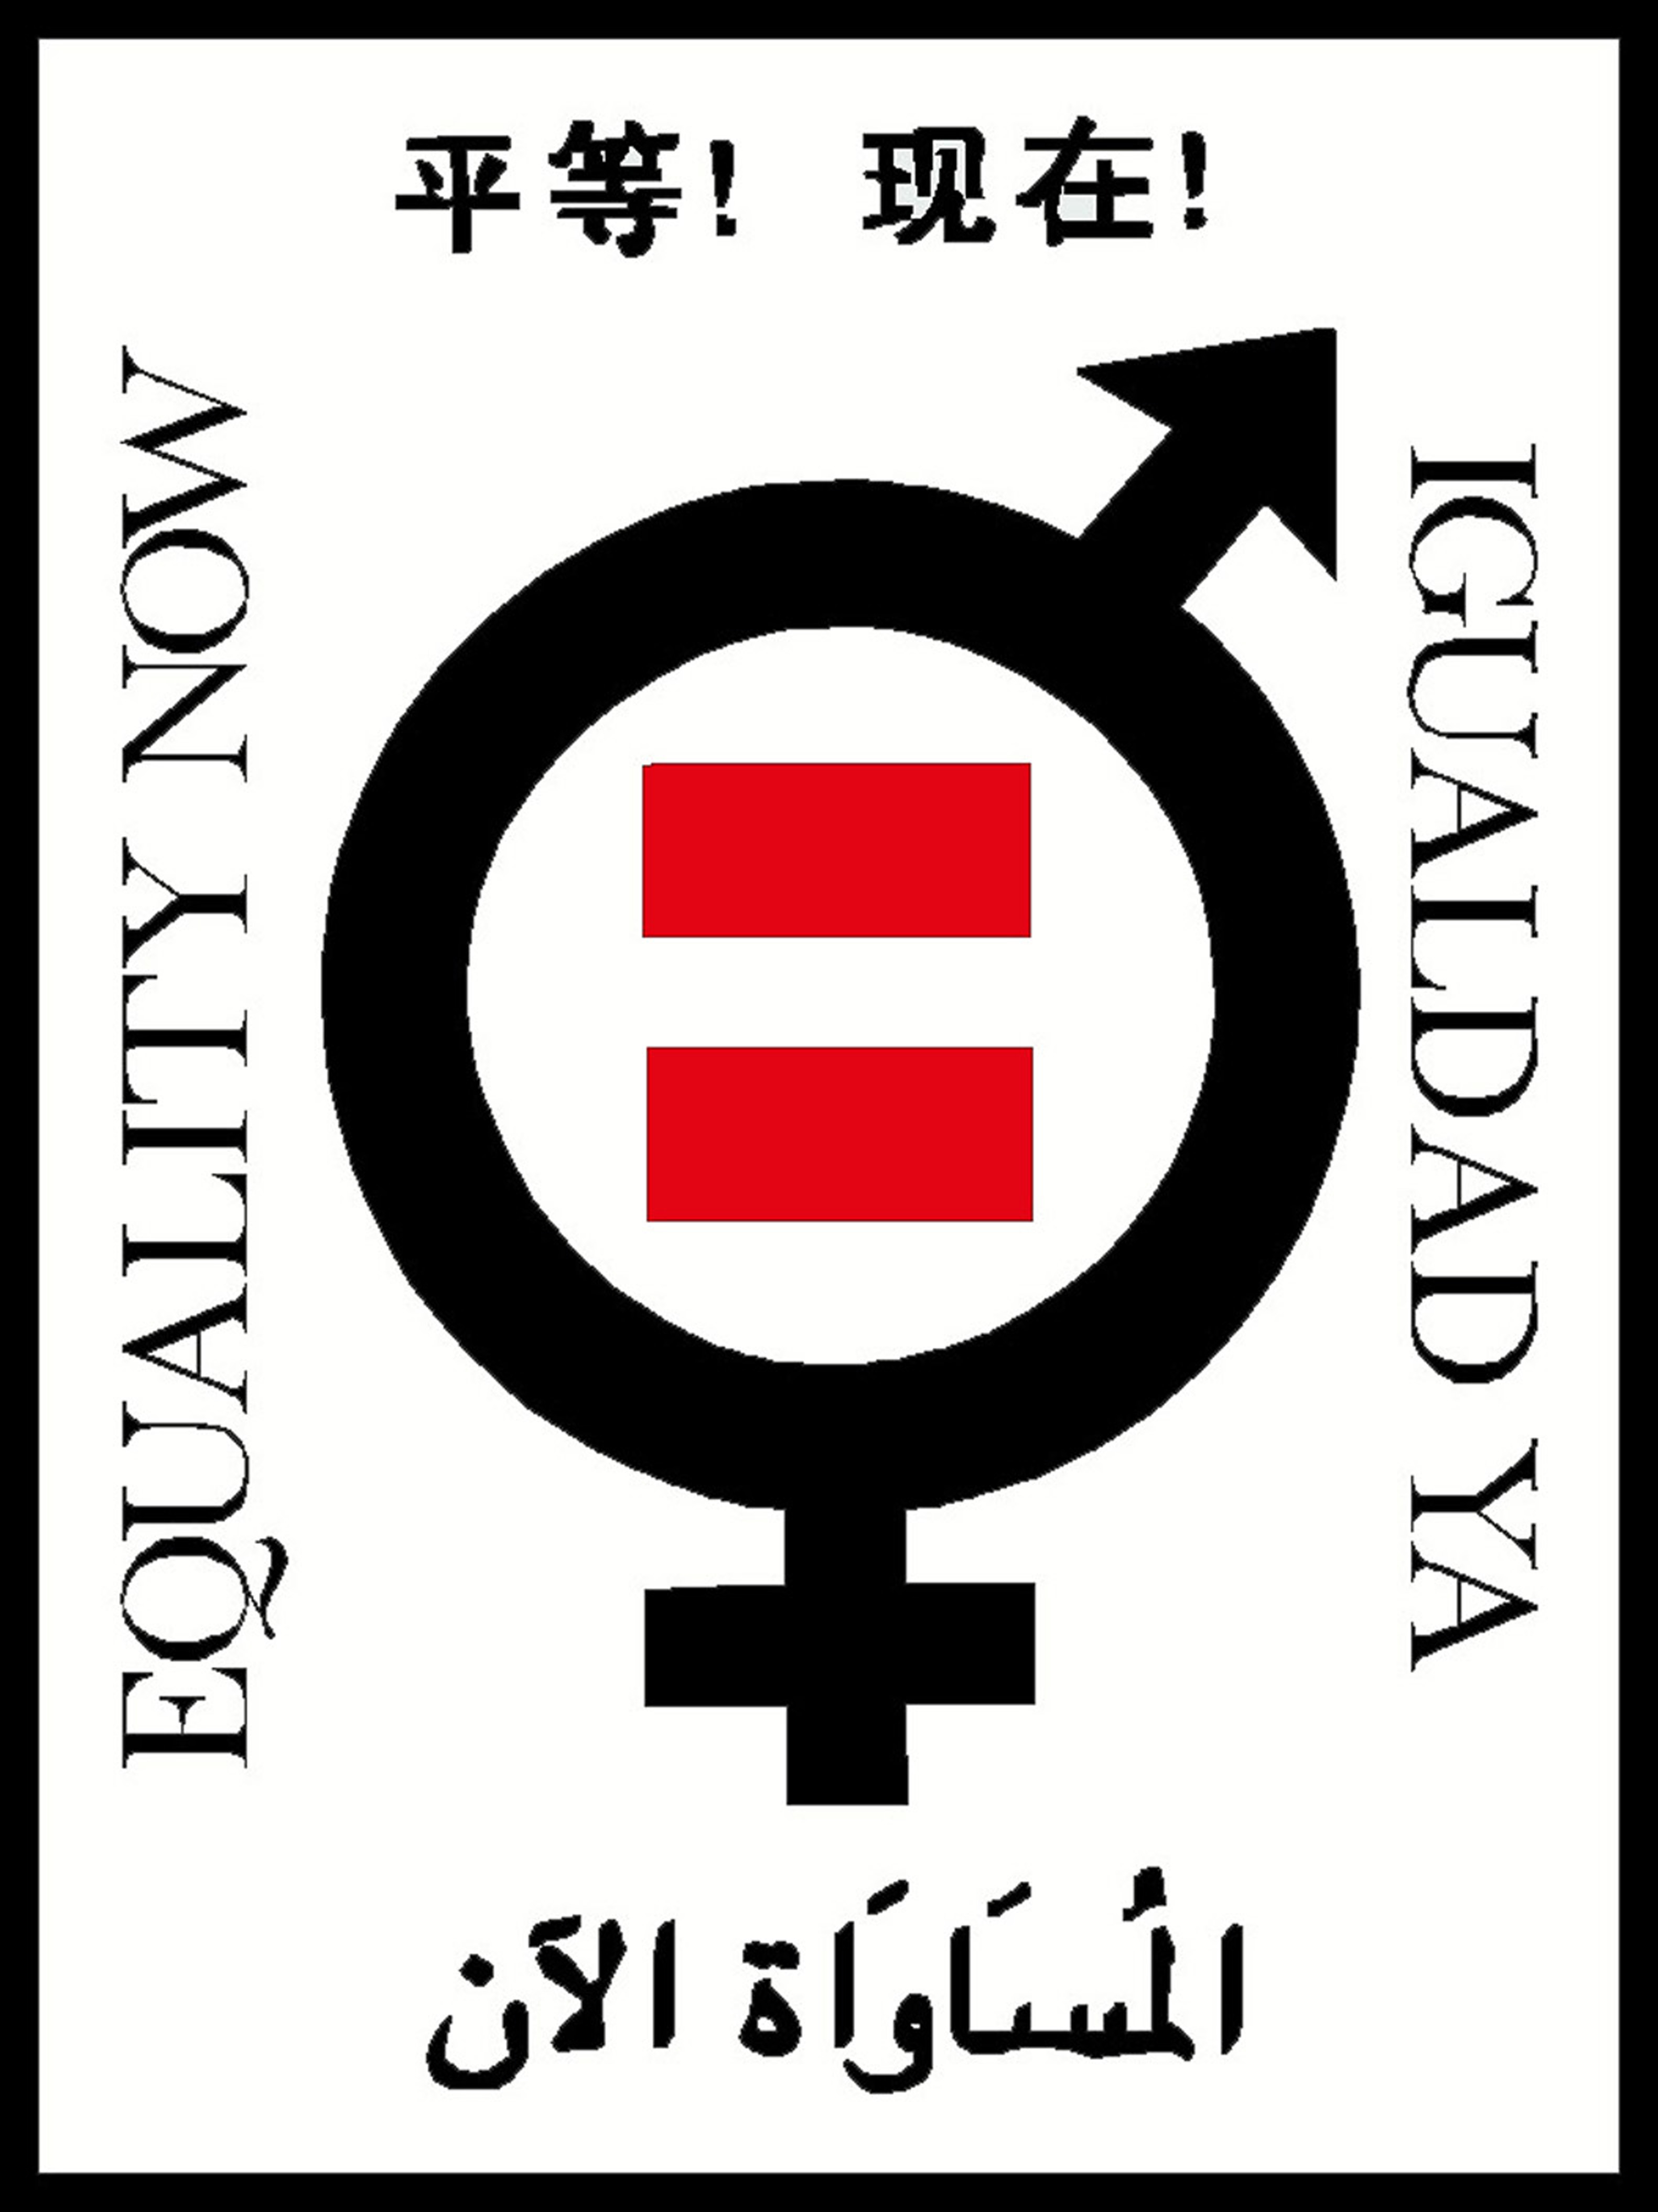 Equality_Now_logo-300dpi.jpg